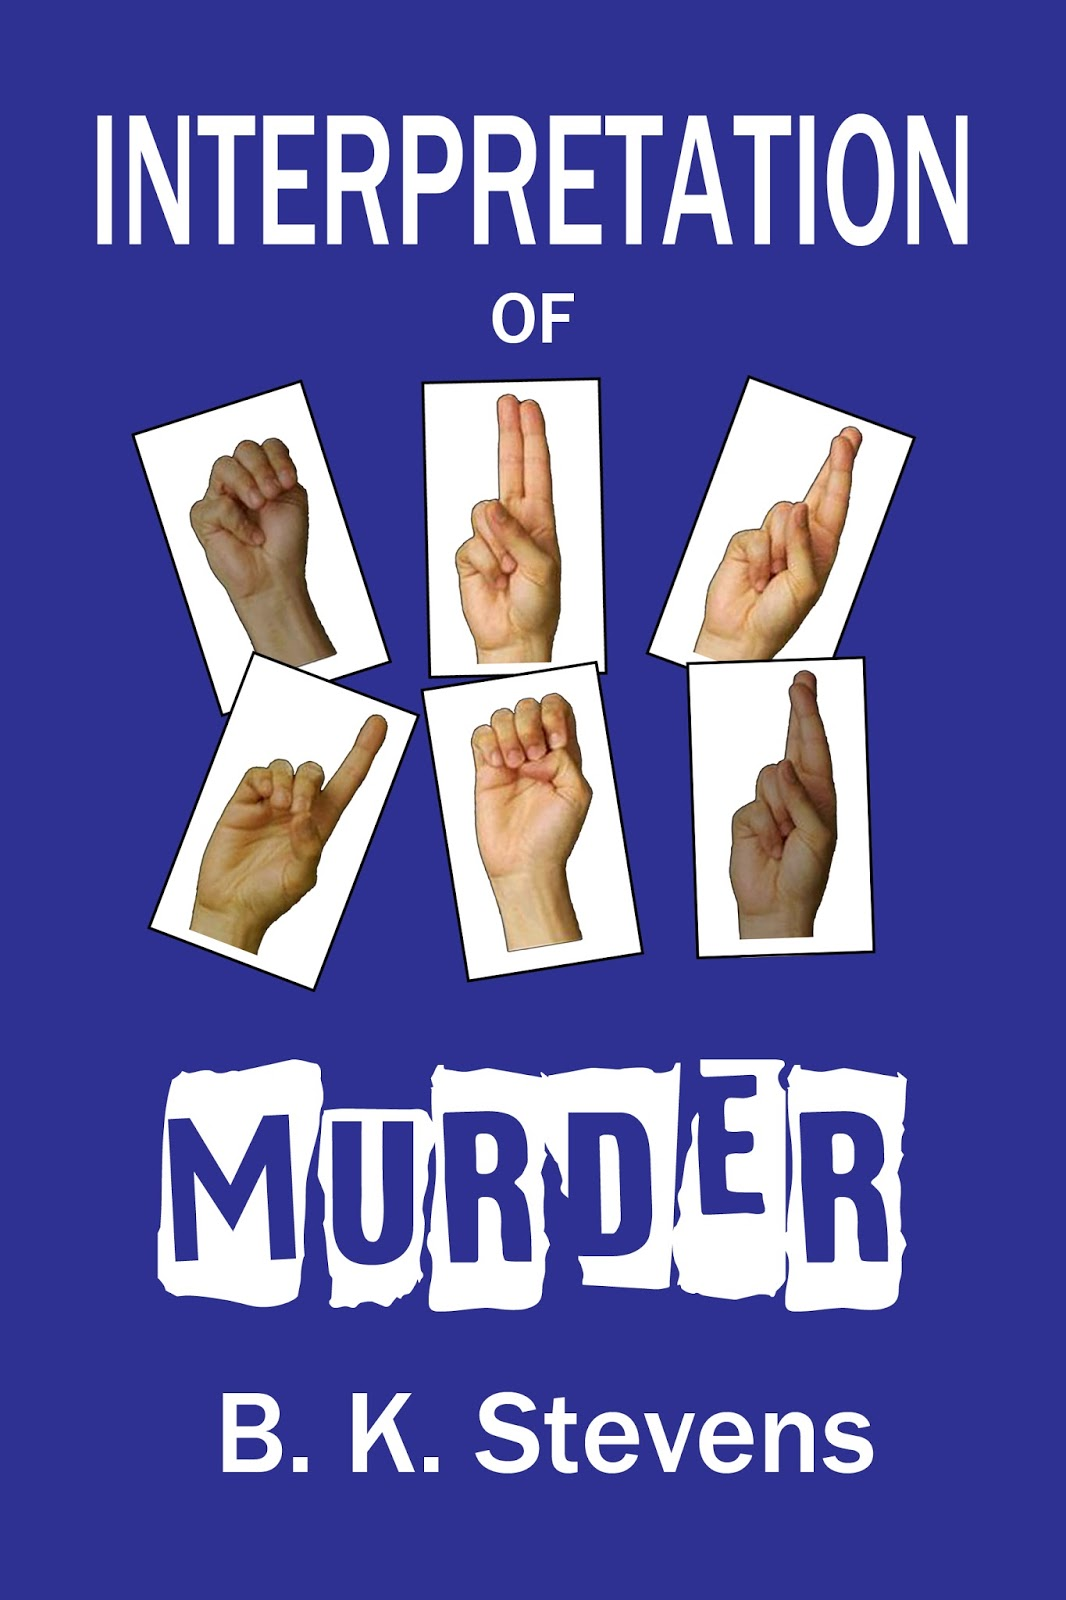 How To Say Good Job In Sign Language : language, Killer, Crafts, Crafty, Killers:, GUEST, AUTHOR, STEVENS, AMERICAN, LANGUAGE